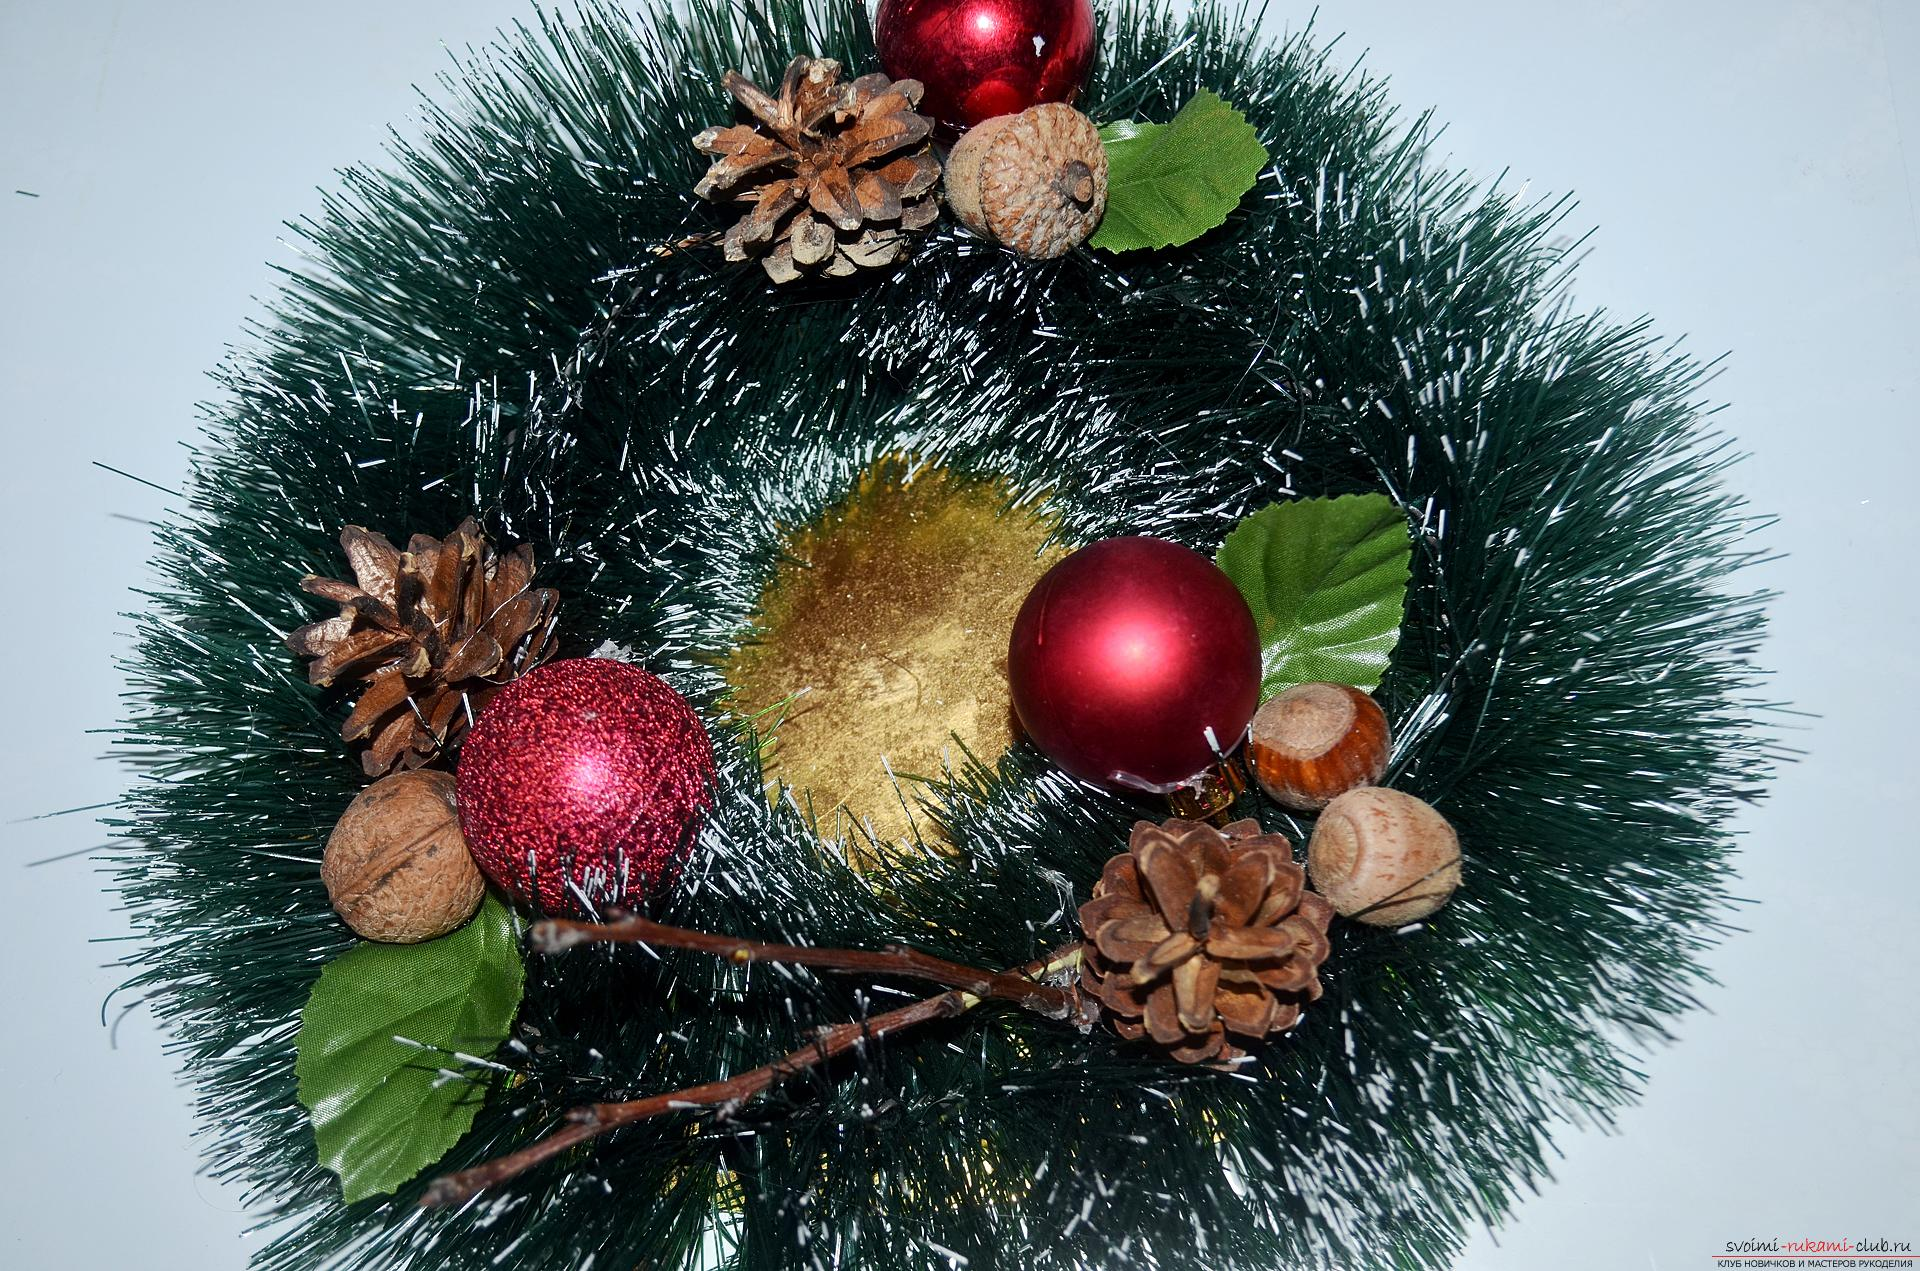 The master class will tell you how to make your own handiwork - a Christmas song with a candle. Photo №6